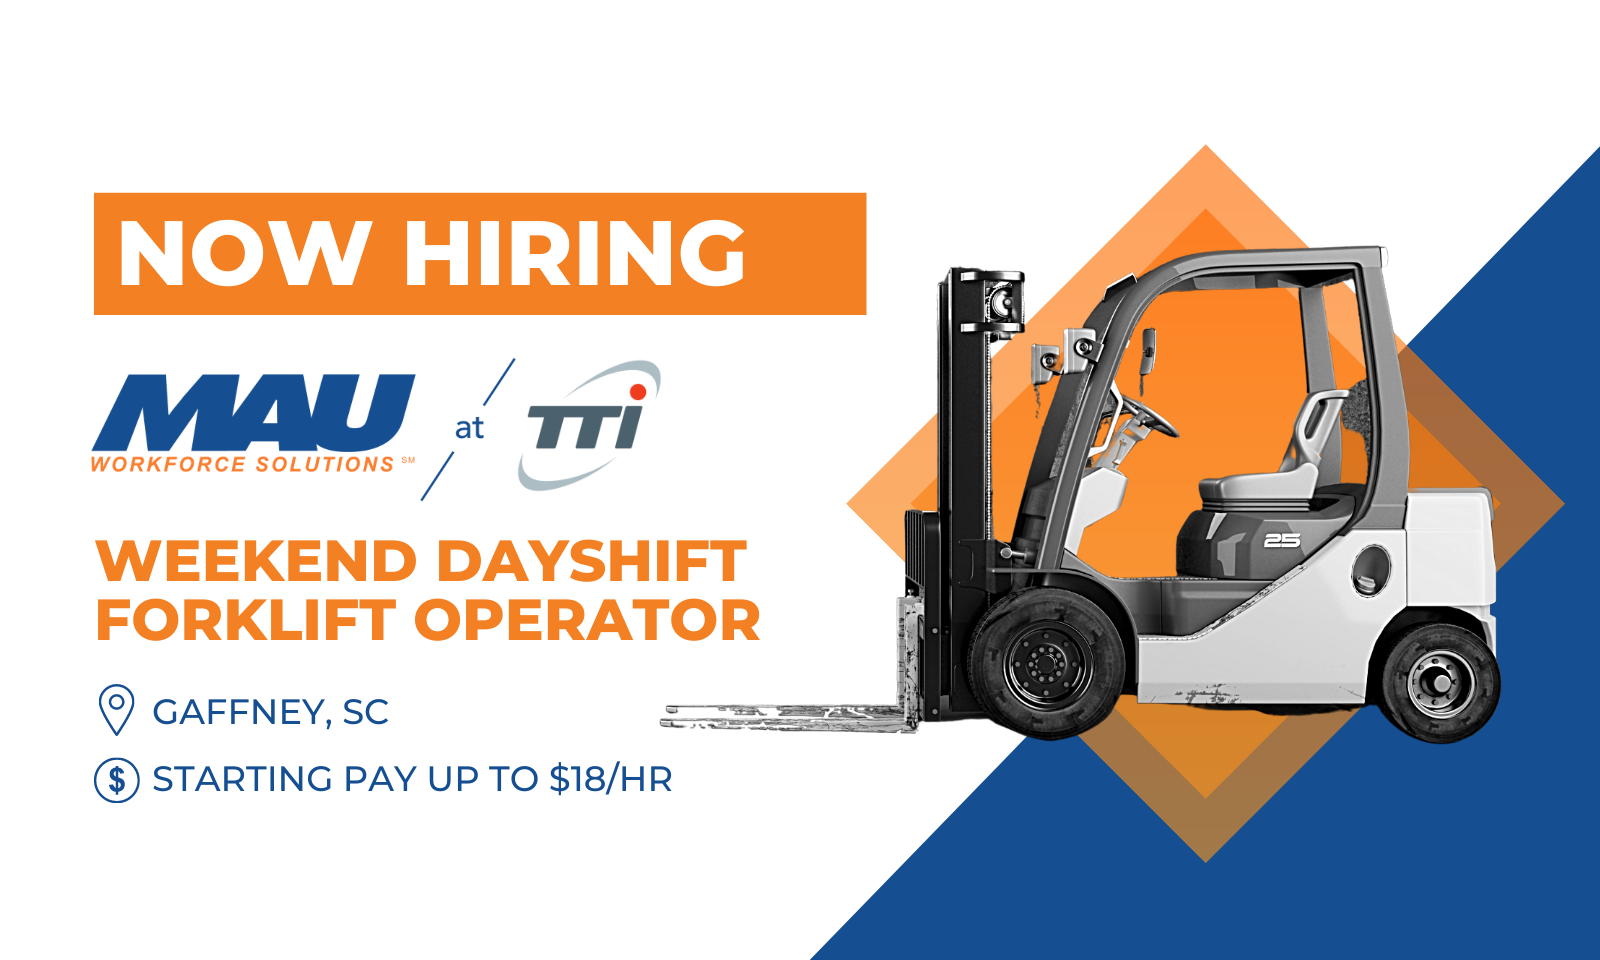 now hiring tti weekend dayshift forklift operator starting pay up to 18 per hour gaffney south carolina